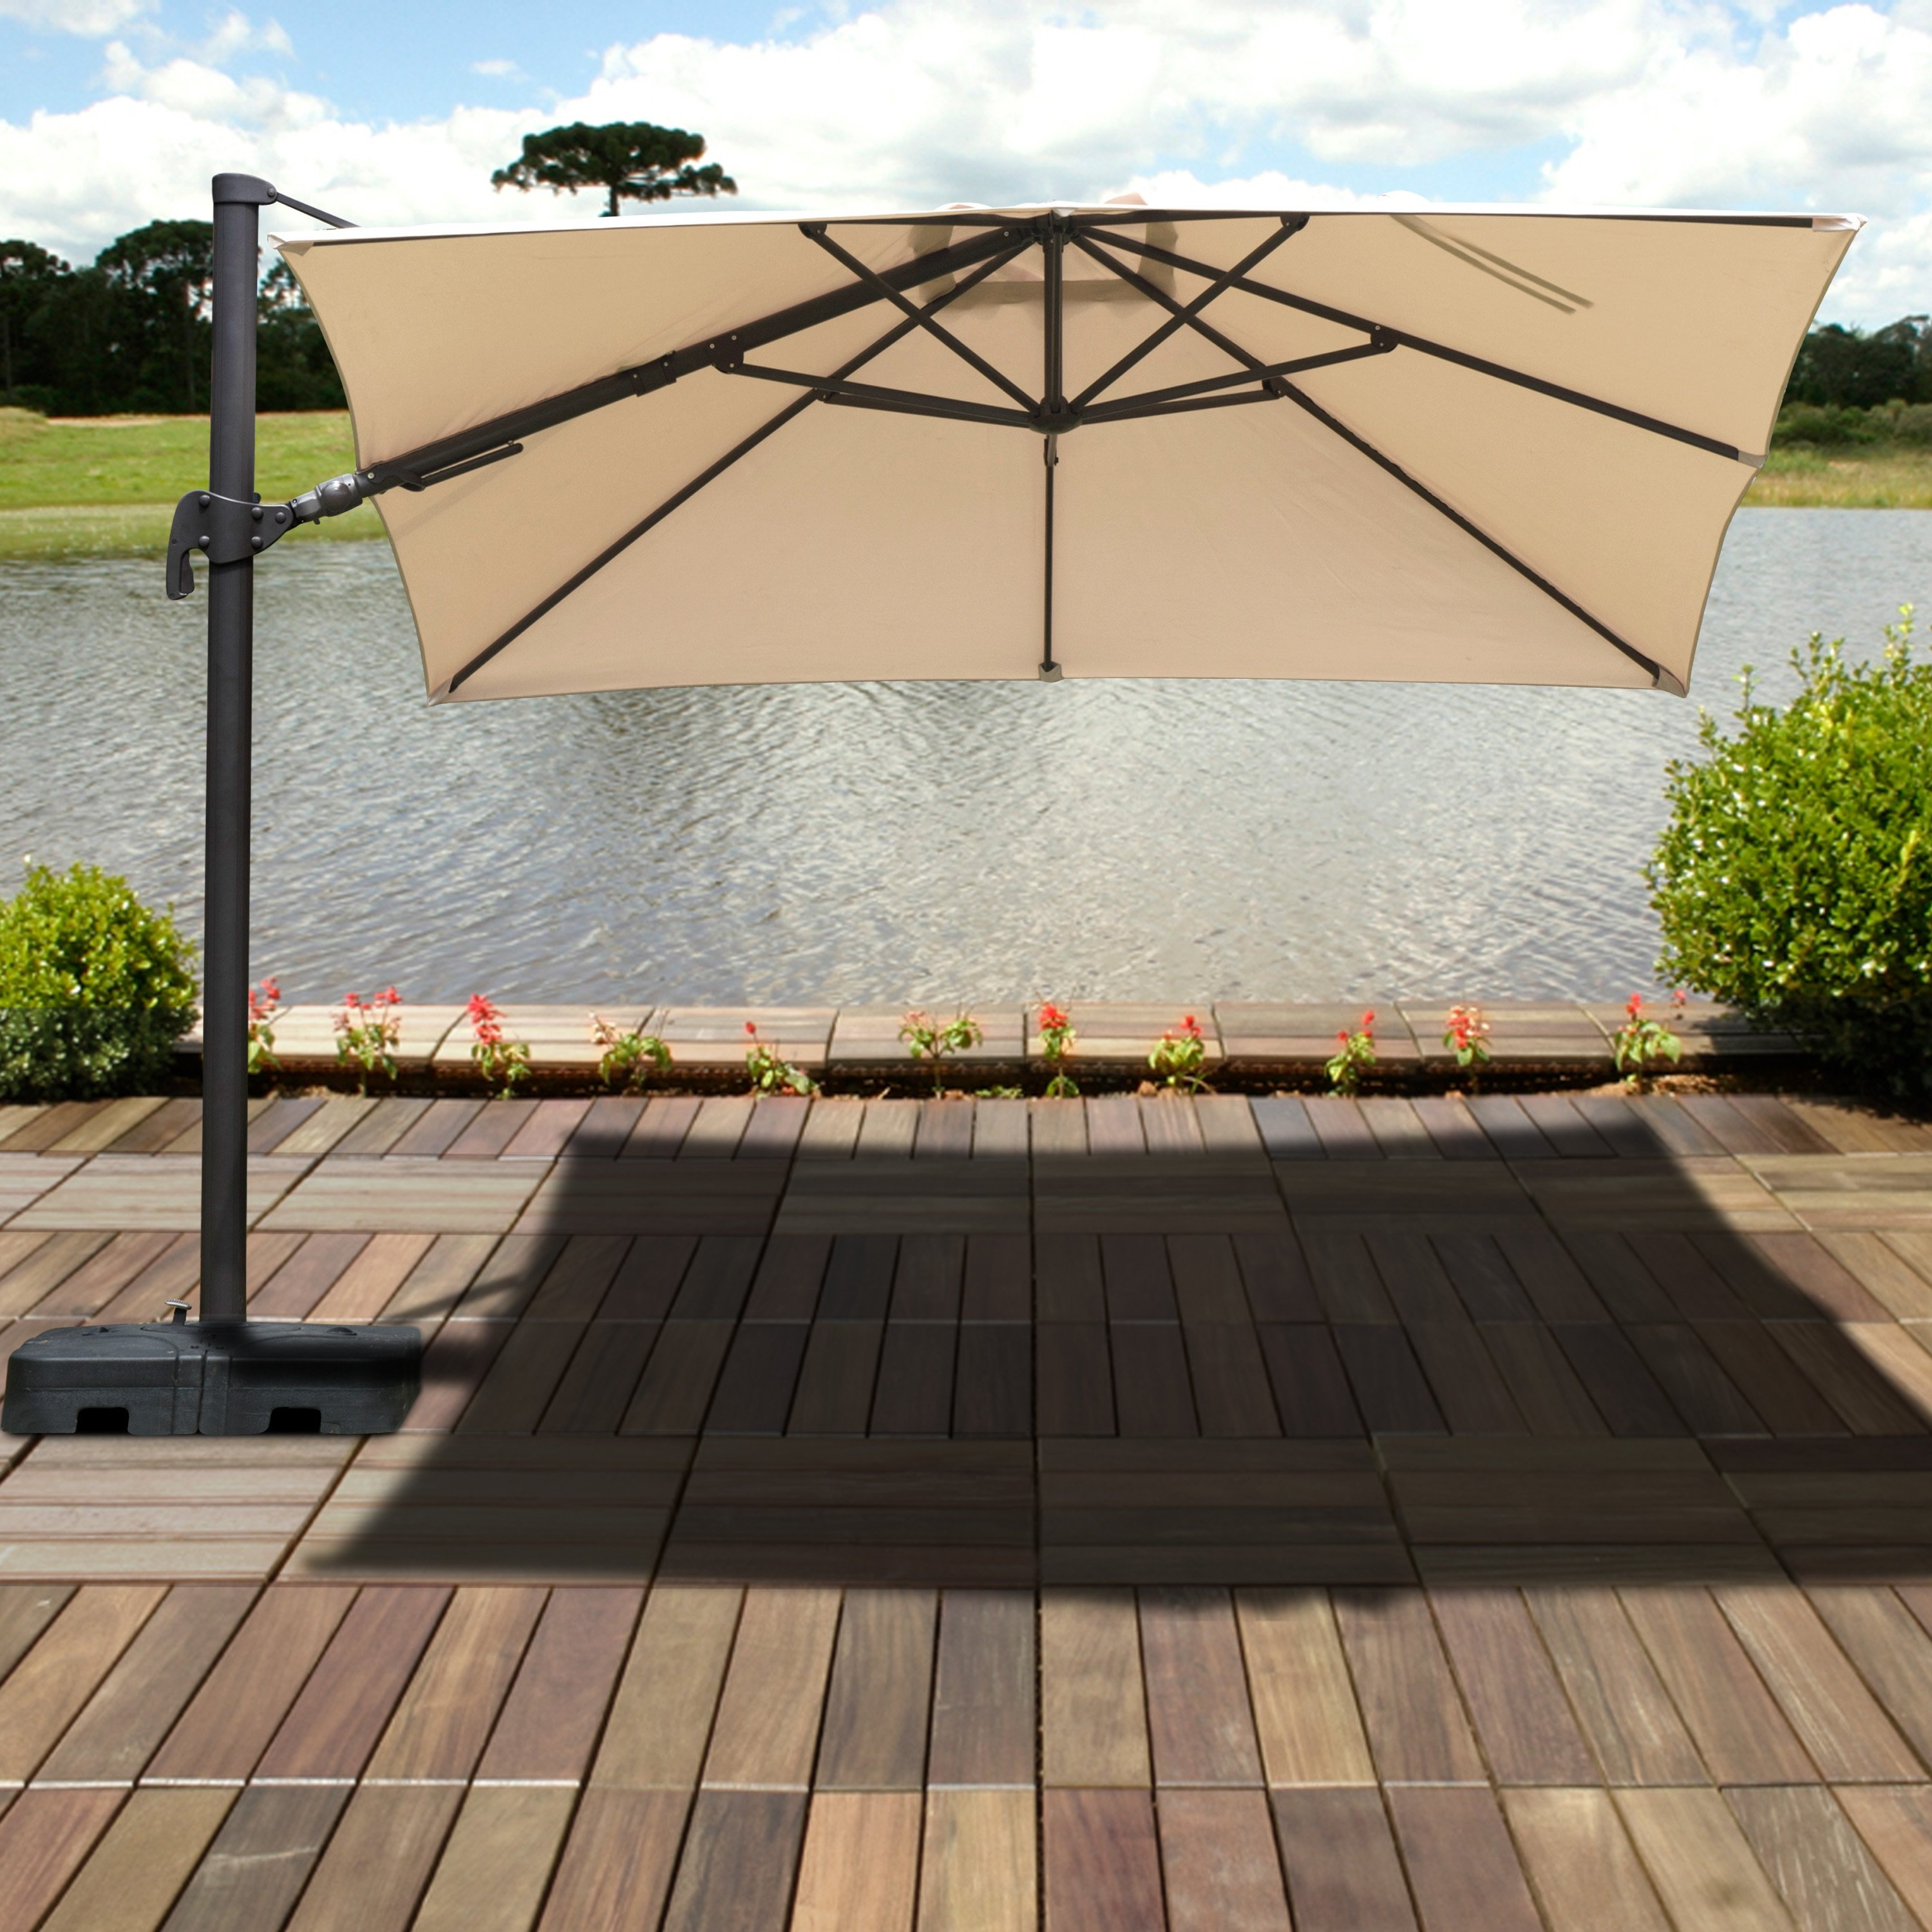 Well Liked Spitler Square Cantilever Umbrellas Inside Gemmenne 10' Square Cantilever Umbrella (View 8 of 20)